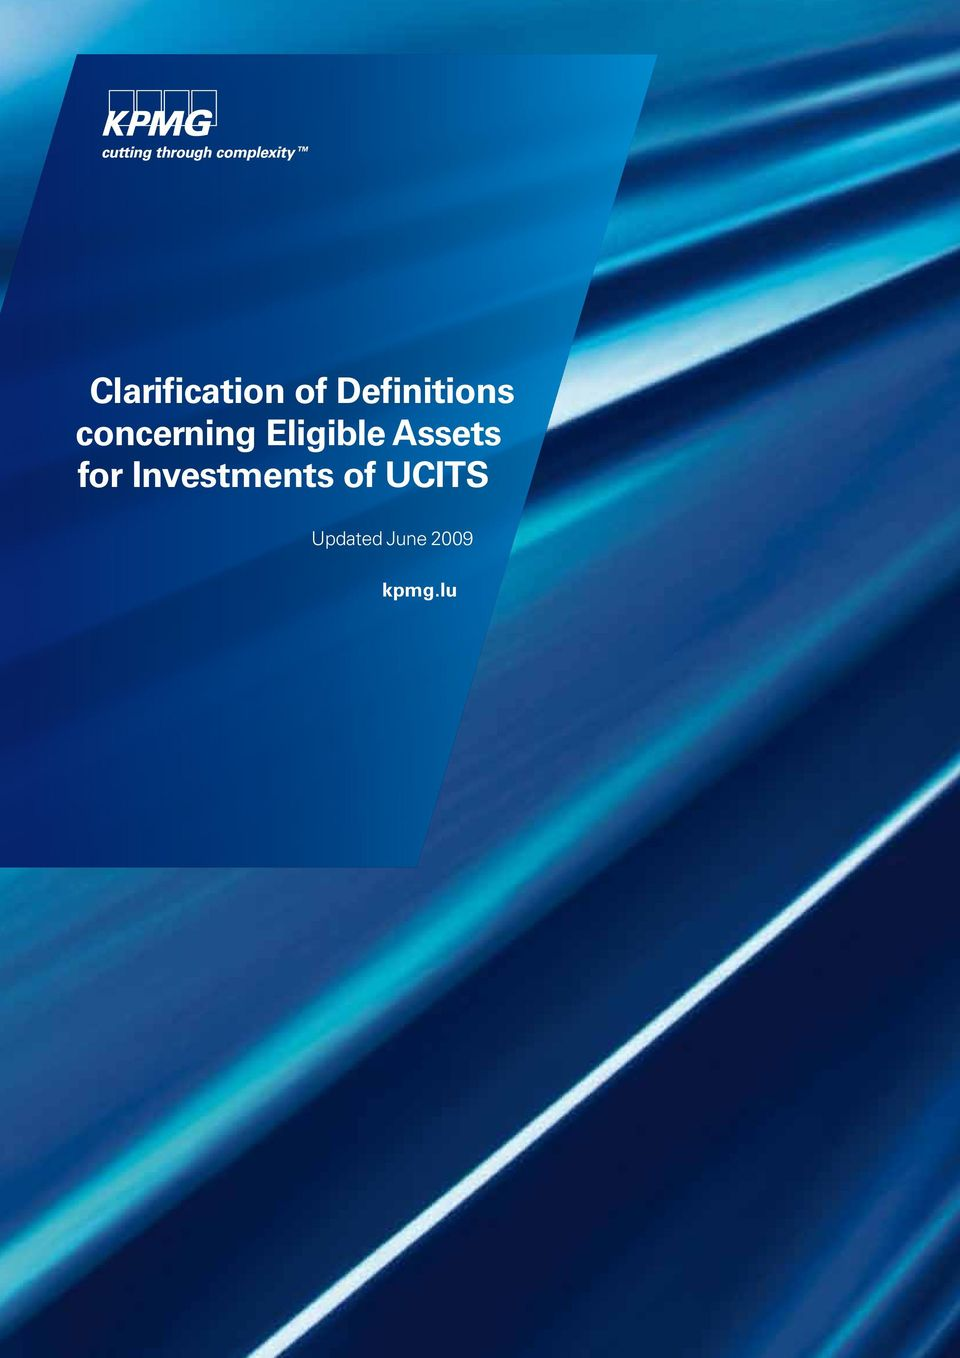 Eligible Assets for Investments of UCITS